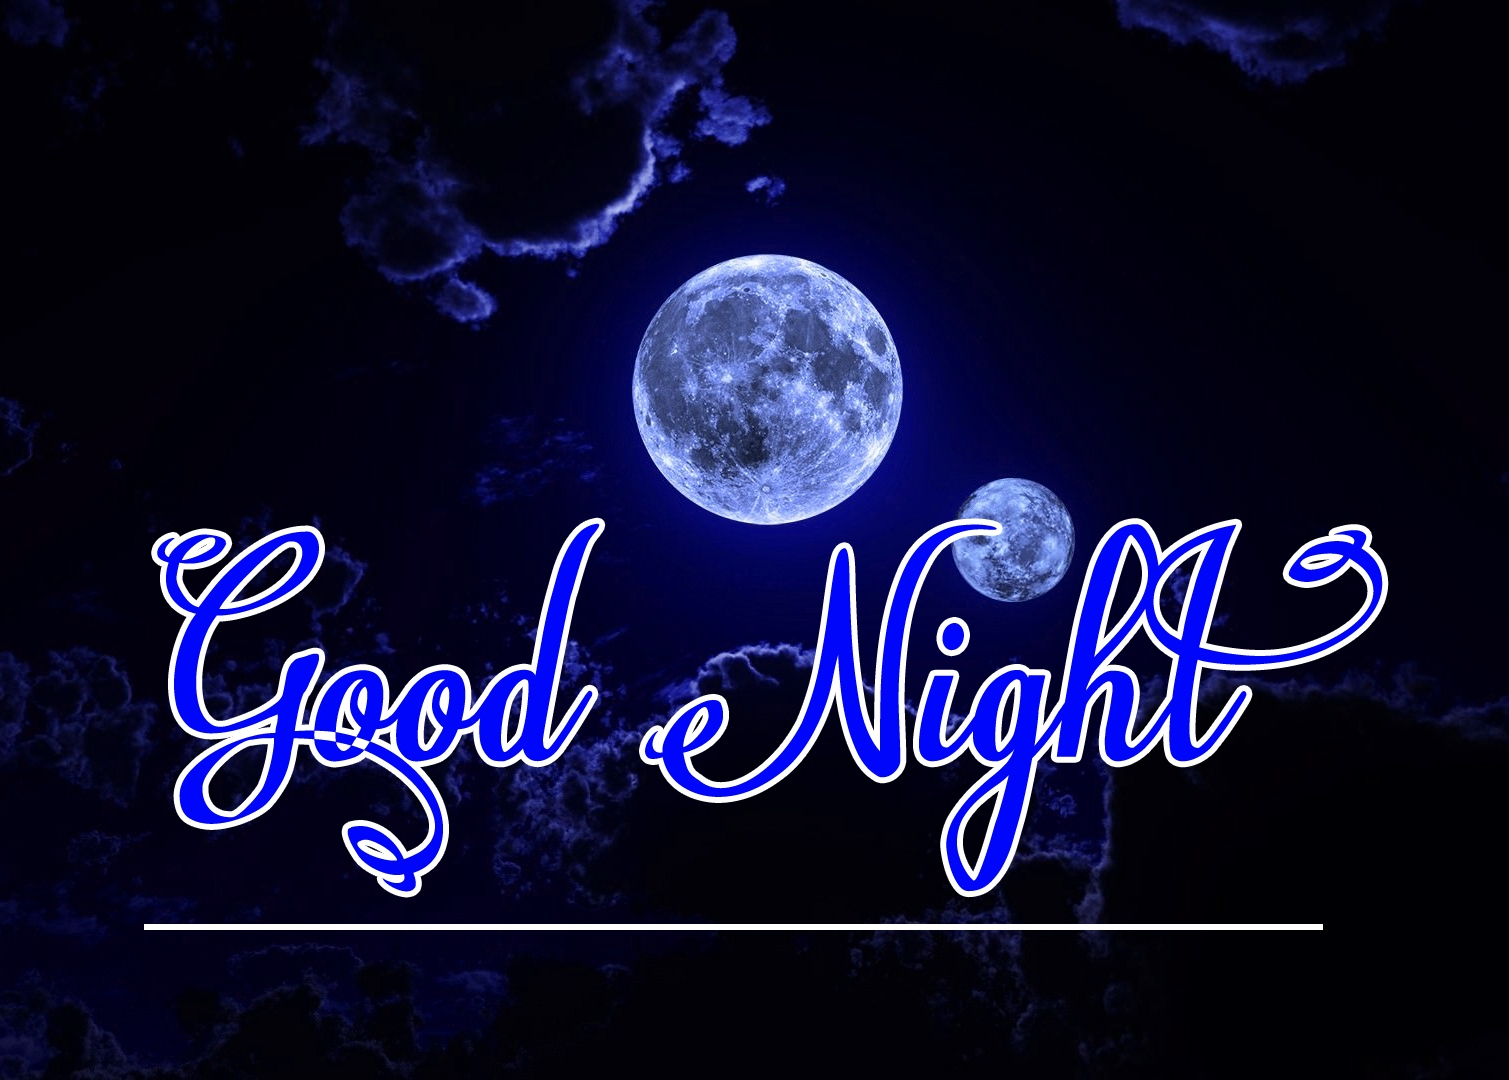 Good night wallpaper hd 3 1